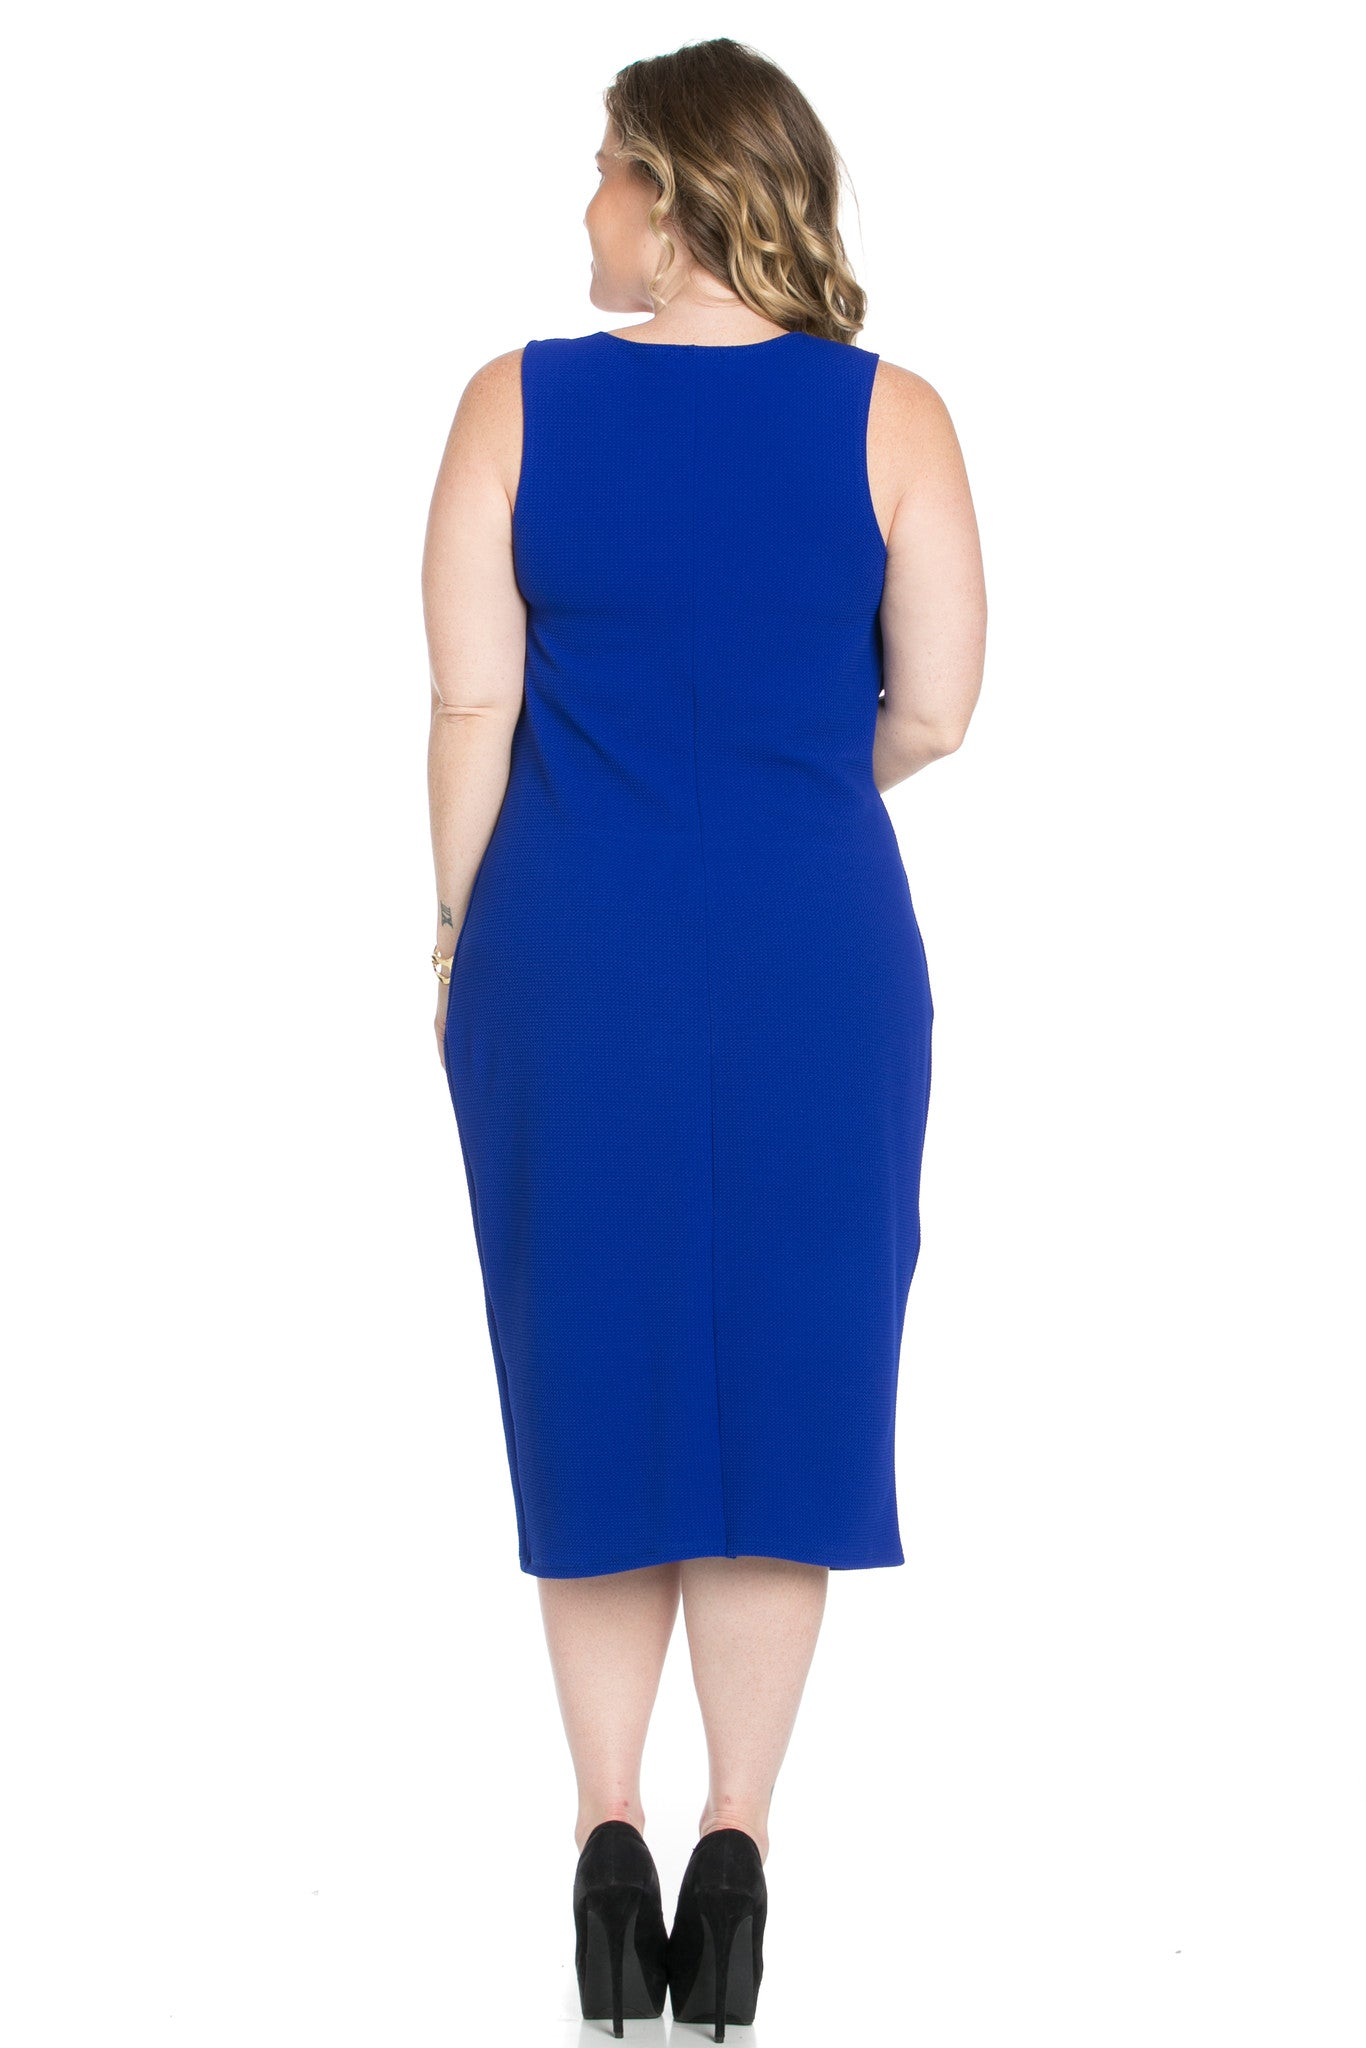 Royal Blue Modest a Bit with Bare Shoulders Dress - Dresses - My Yuccie - 7